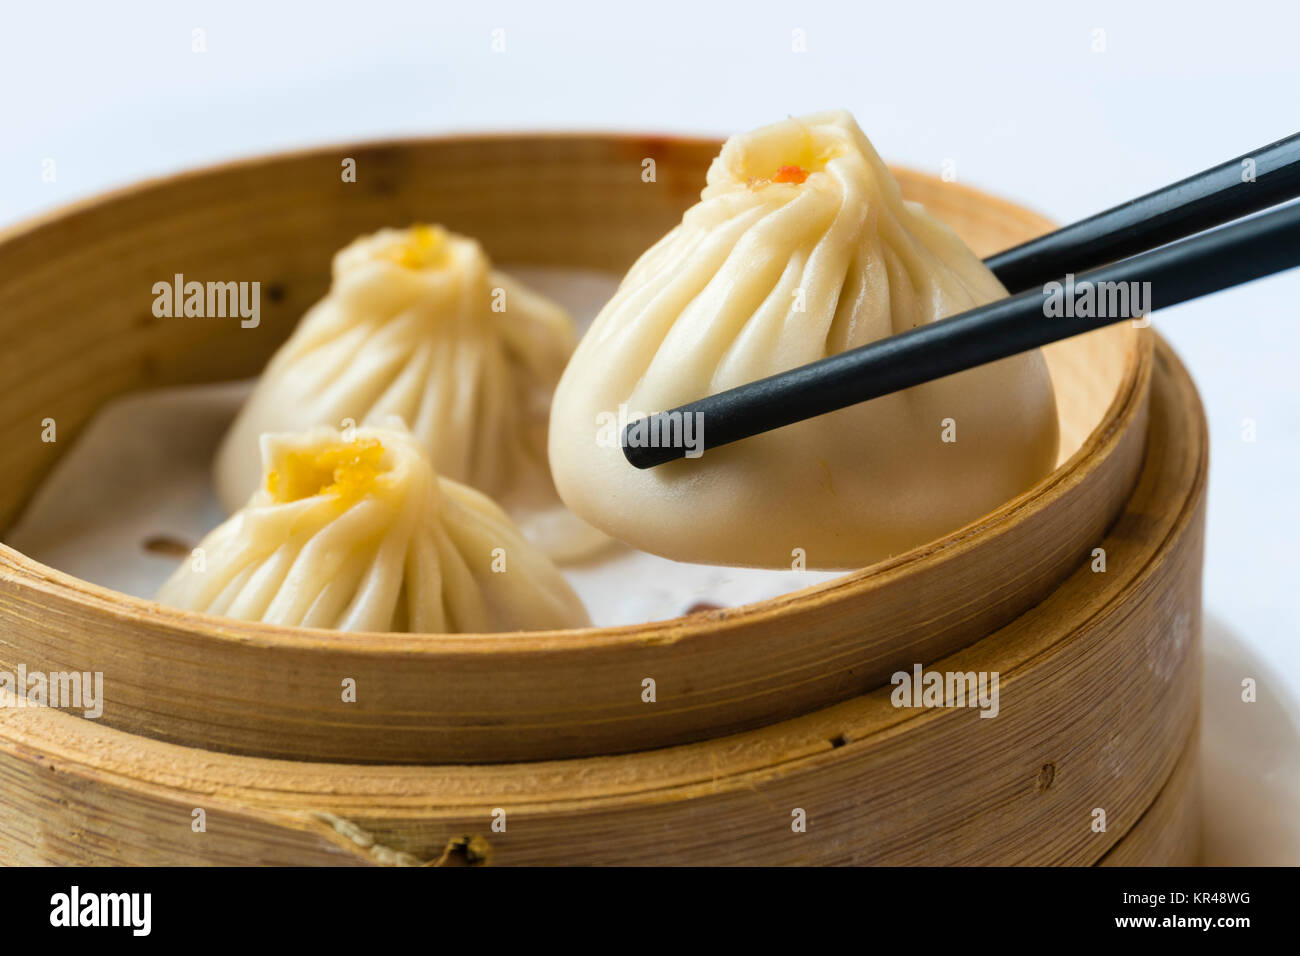 Traditional Shanghai dumpling, also called xiaolongbao - Stock Image